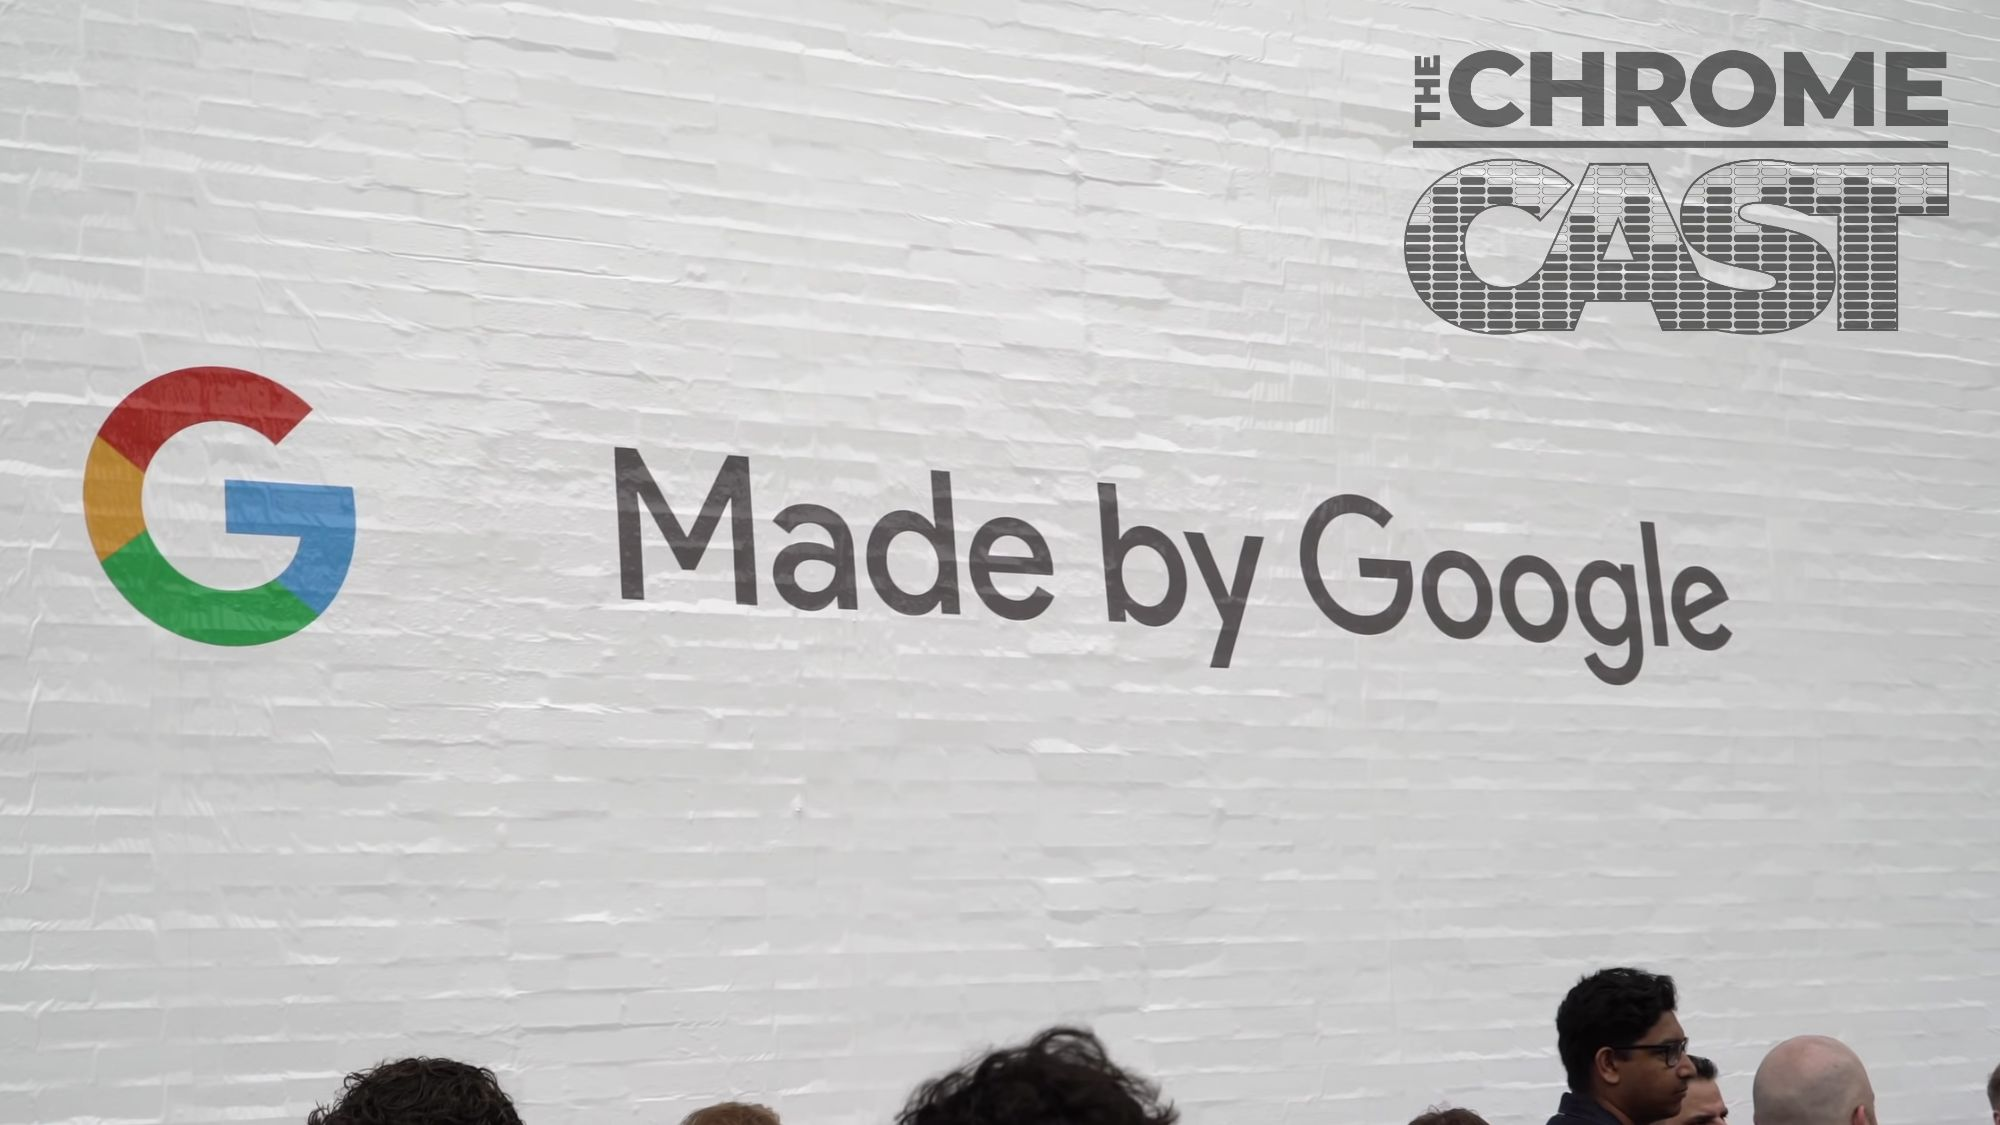 The Chrome Cast 27: Google's hardware event, Pixel 4 & ASUS Flip C433 leaks